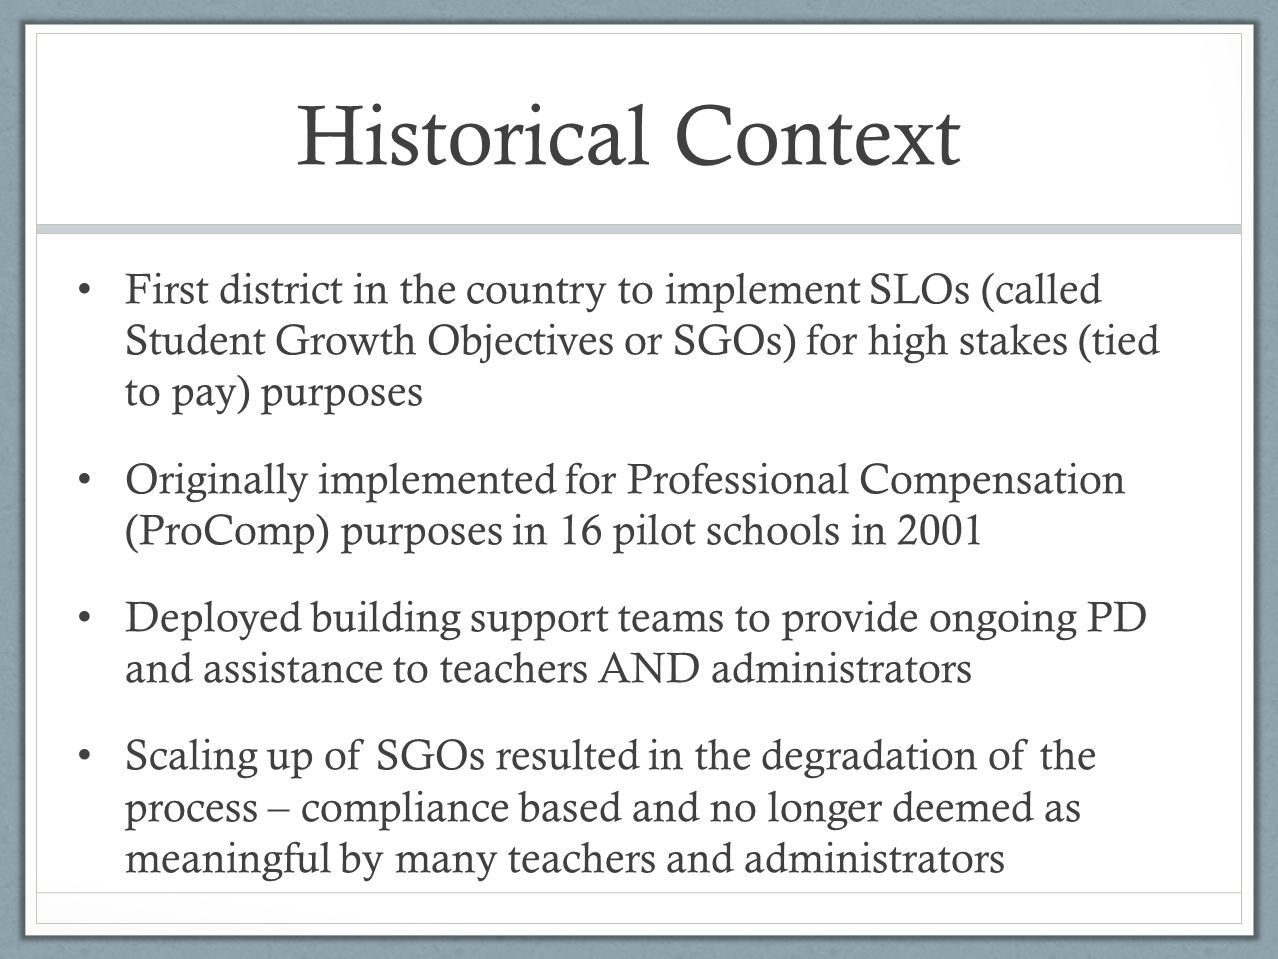 Historical Context First district in the country to implement SLOs (called Student Growth Objectives or SGOs) for high stakes (tied to pay) purposes Originally implemented for Professional Compensation (ProComp) purposes in 16 pilot schools in 2001 Deployed building support teams to provide ongoing PD and assistance to teachers AND administrators Scaling up of SGOs resulted in the degradation of the process – compliance based and no longer deemed as meaningful by many teachers and administrators